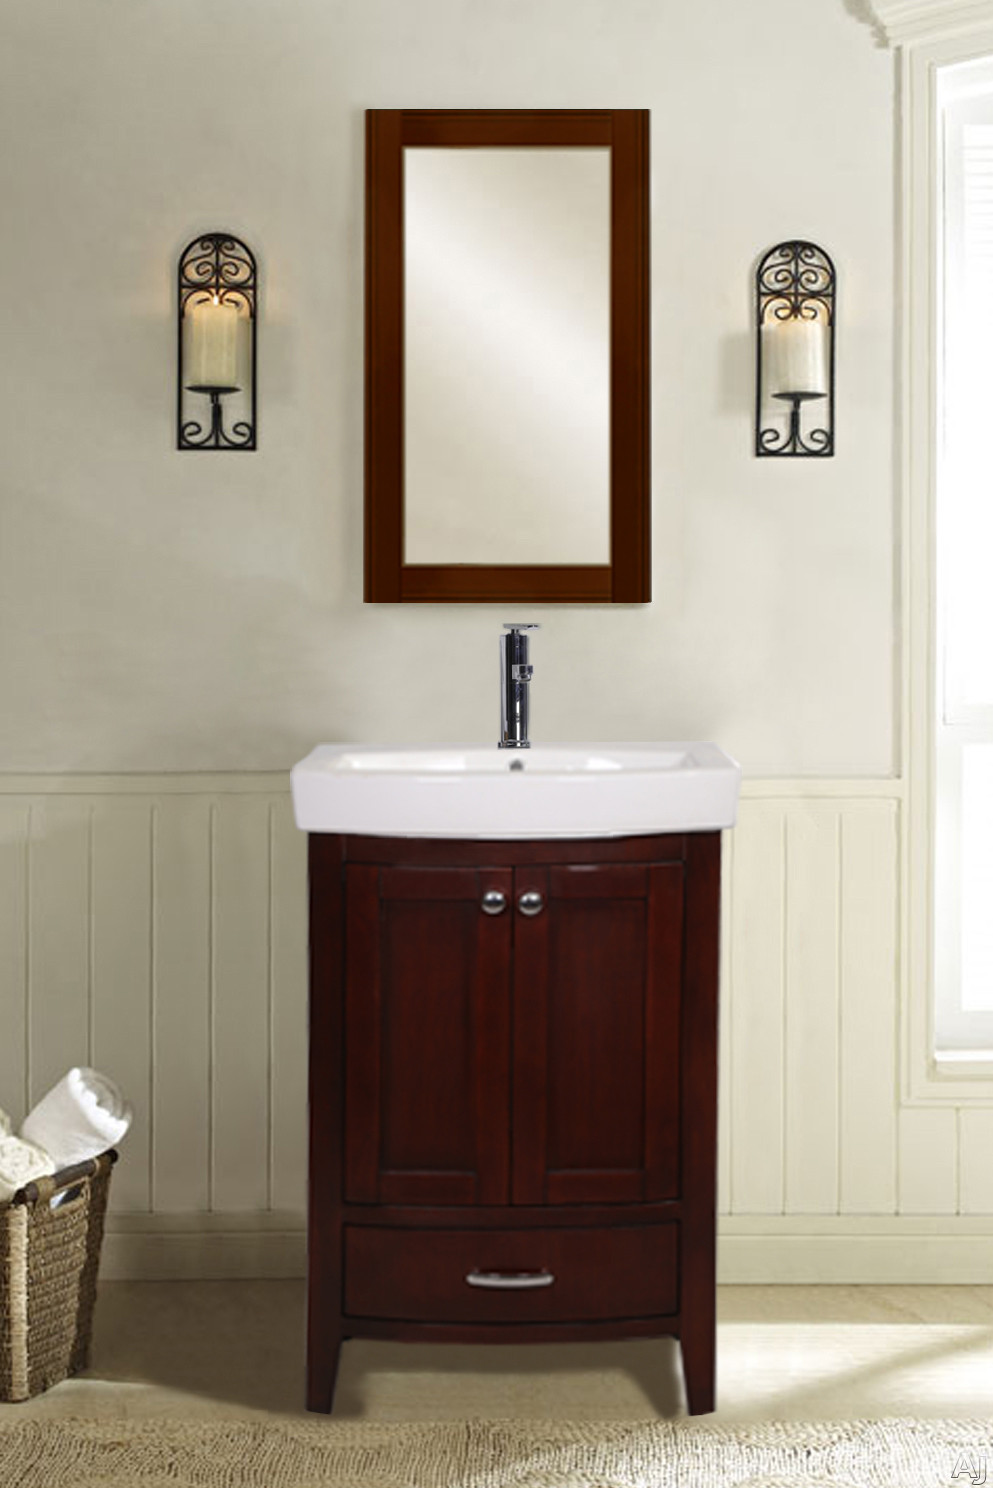 Empire Industries Arch Collection Amw 22 Inch Arch Collection Mirror For Bathroom Sink And Vanity: White